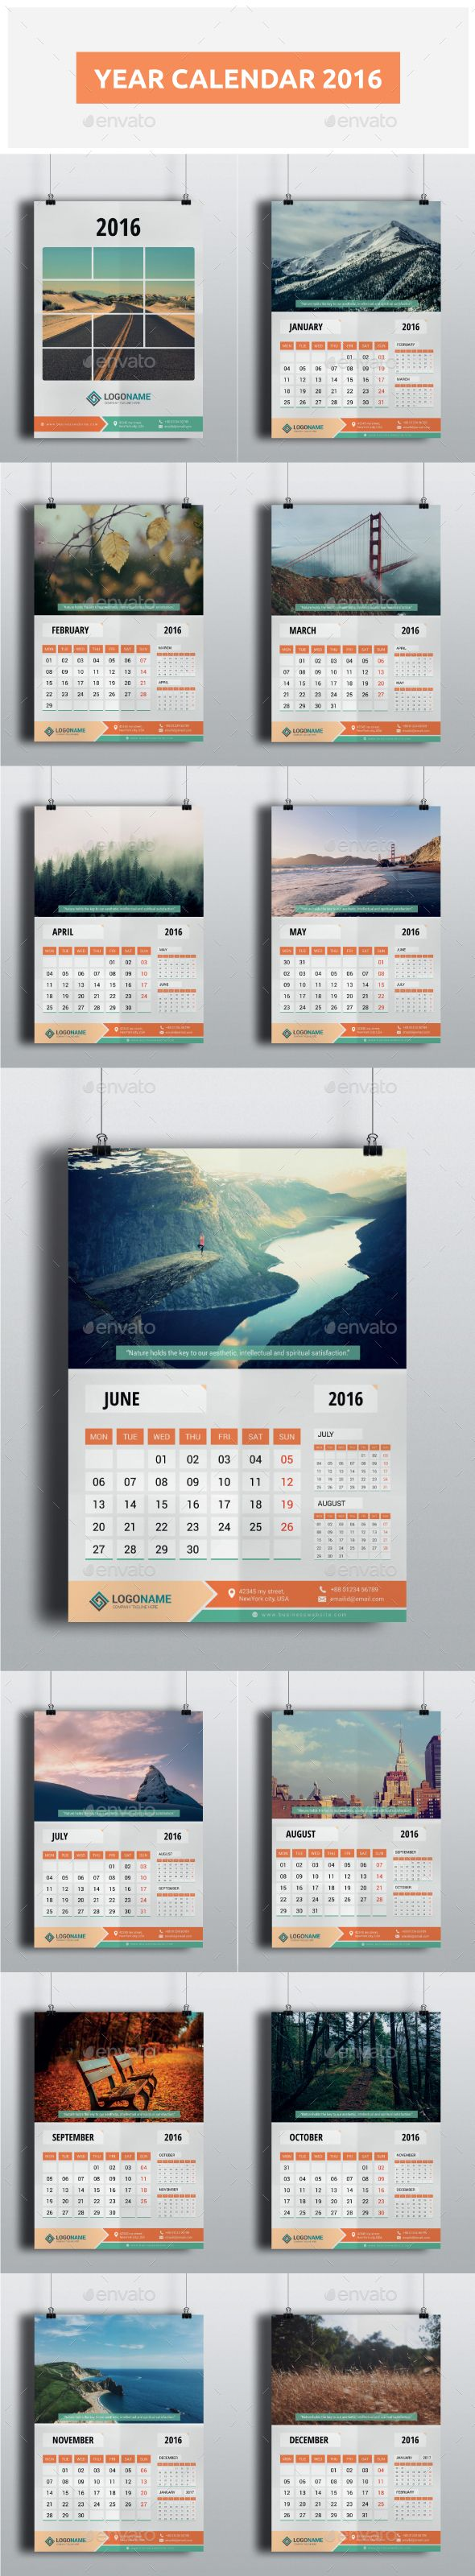 Year Calendar 2016 Template PSD #design Download: http://graphicriver.net/item/year-calendar-2016/13542634?ref=ksioks